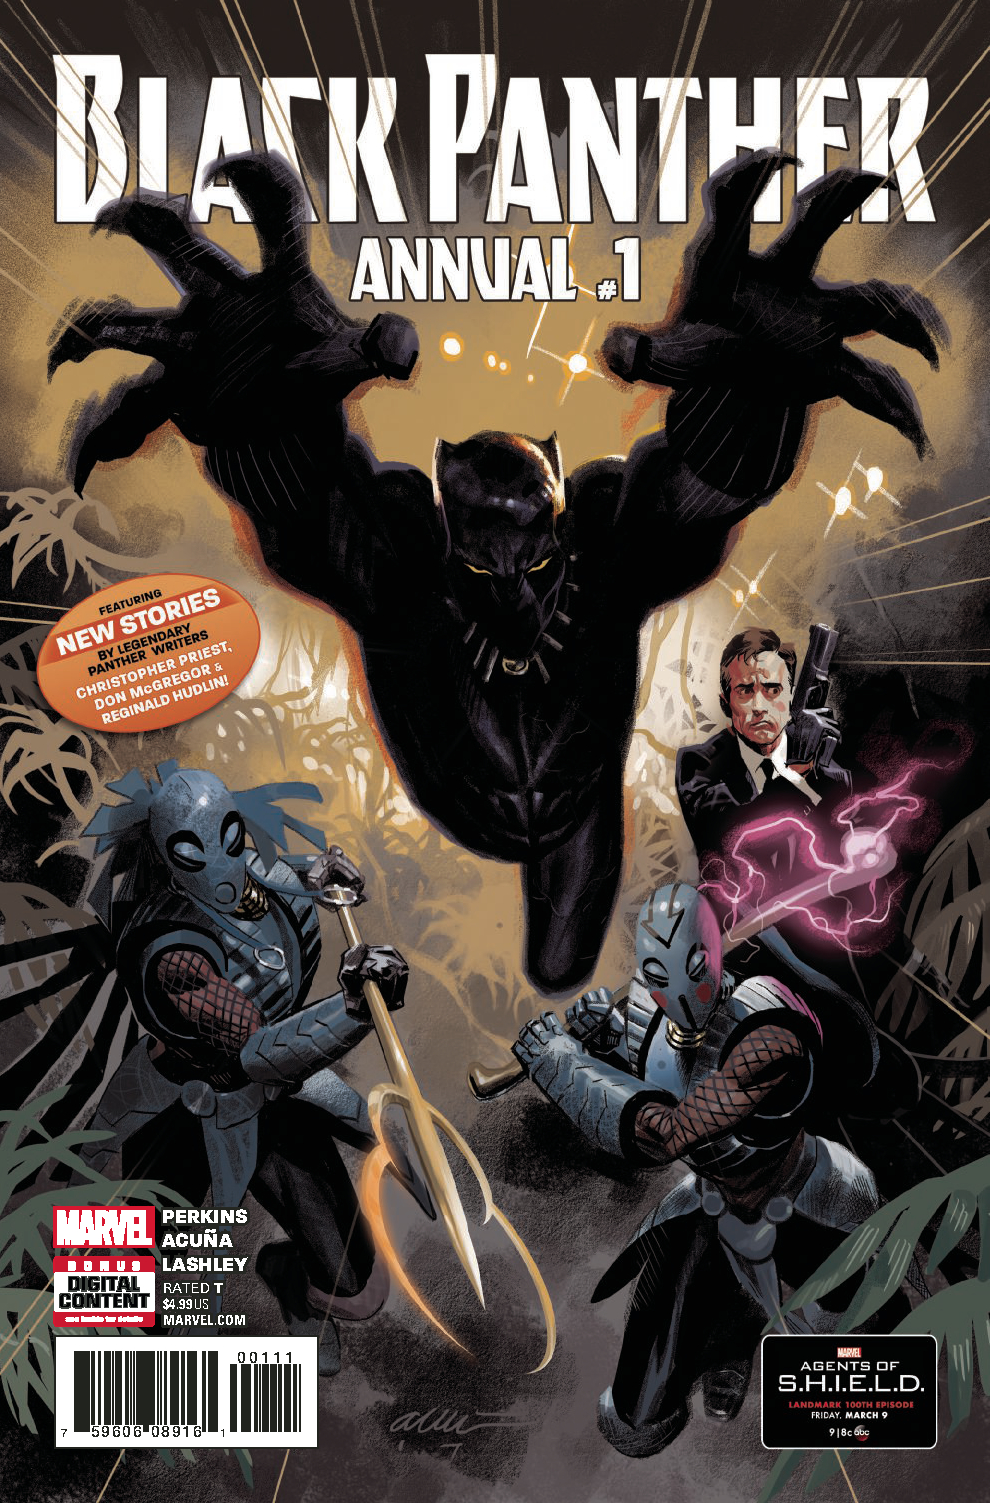 BLACK PANTHER ANNUAL #1 LEG